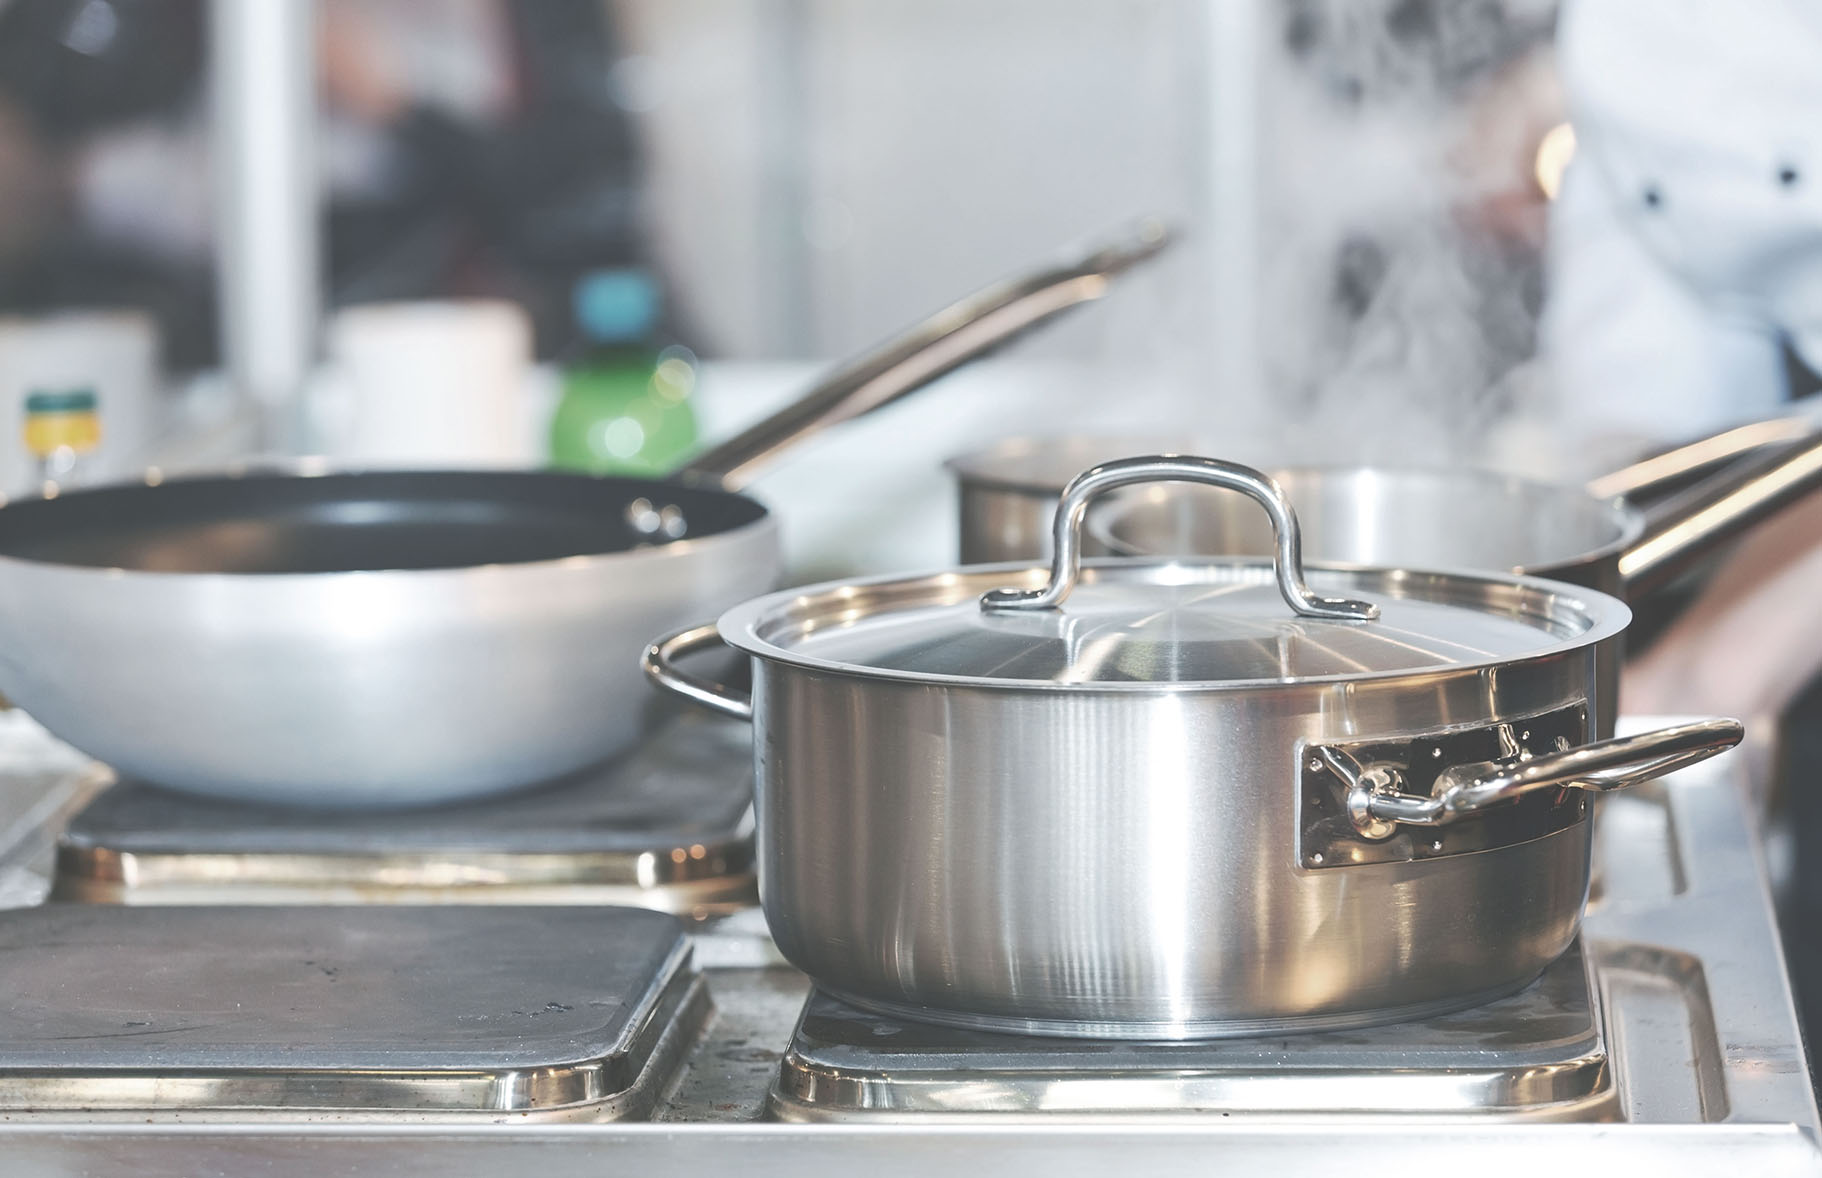 Cooking Equipment Accessories